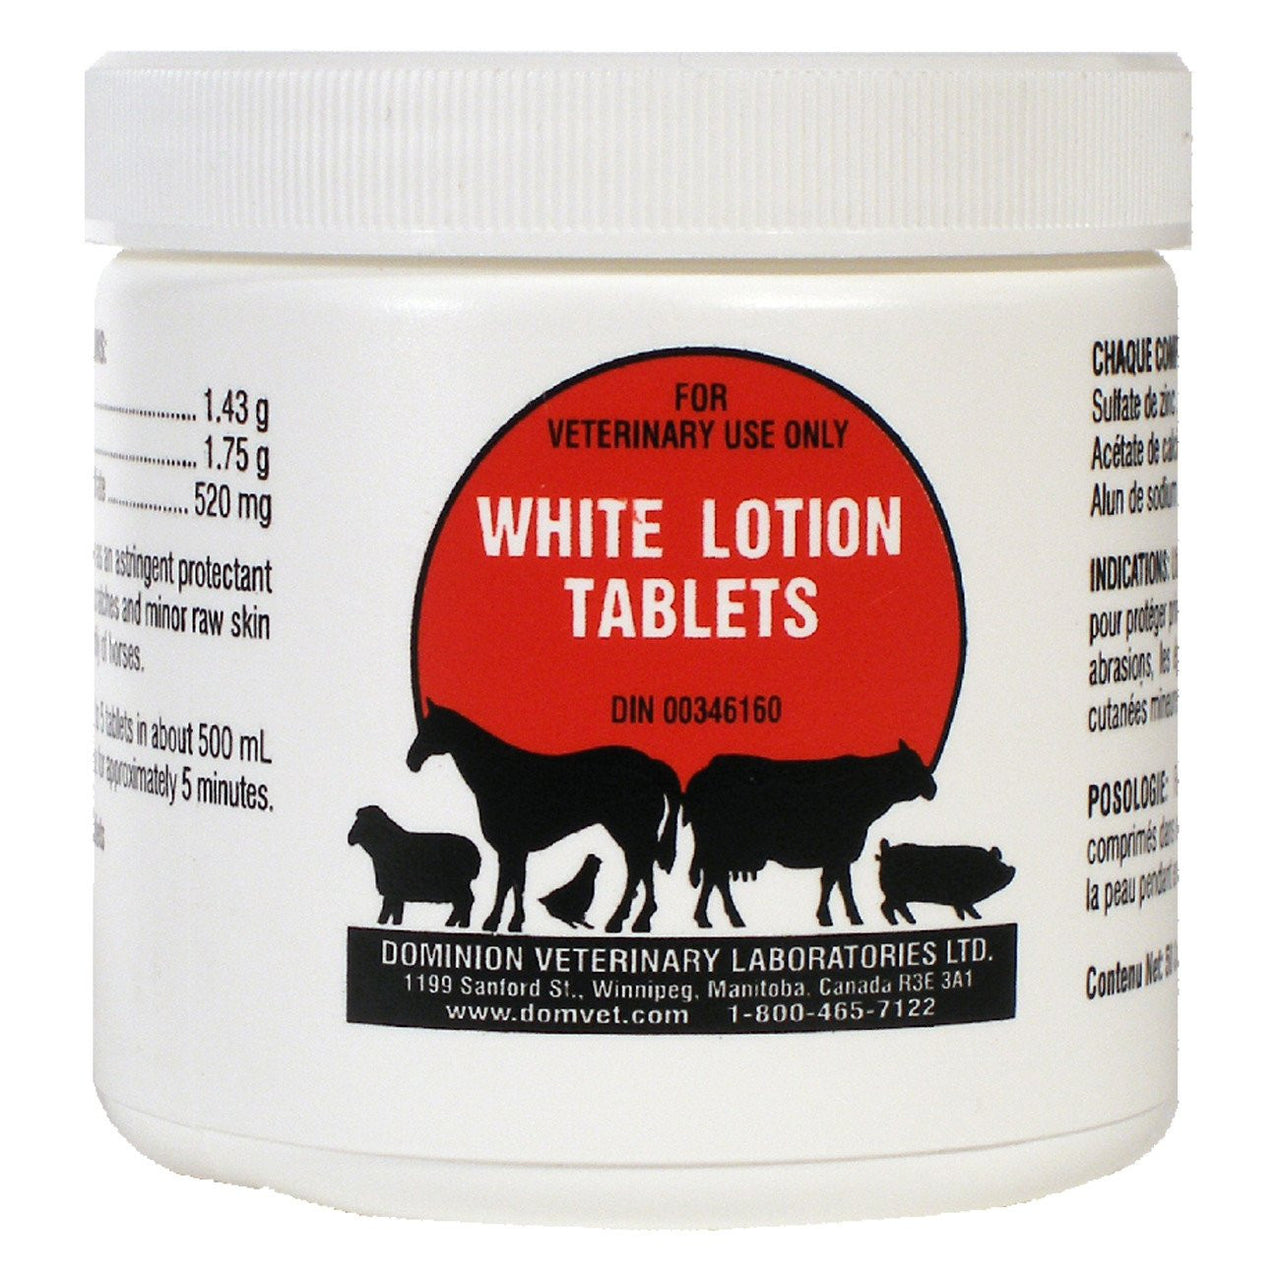 Dvl White Lotion Tablets (50 Per Jar) - Pharmaceuticals Dvl - Canada